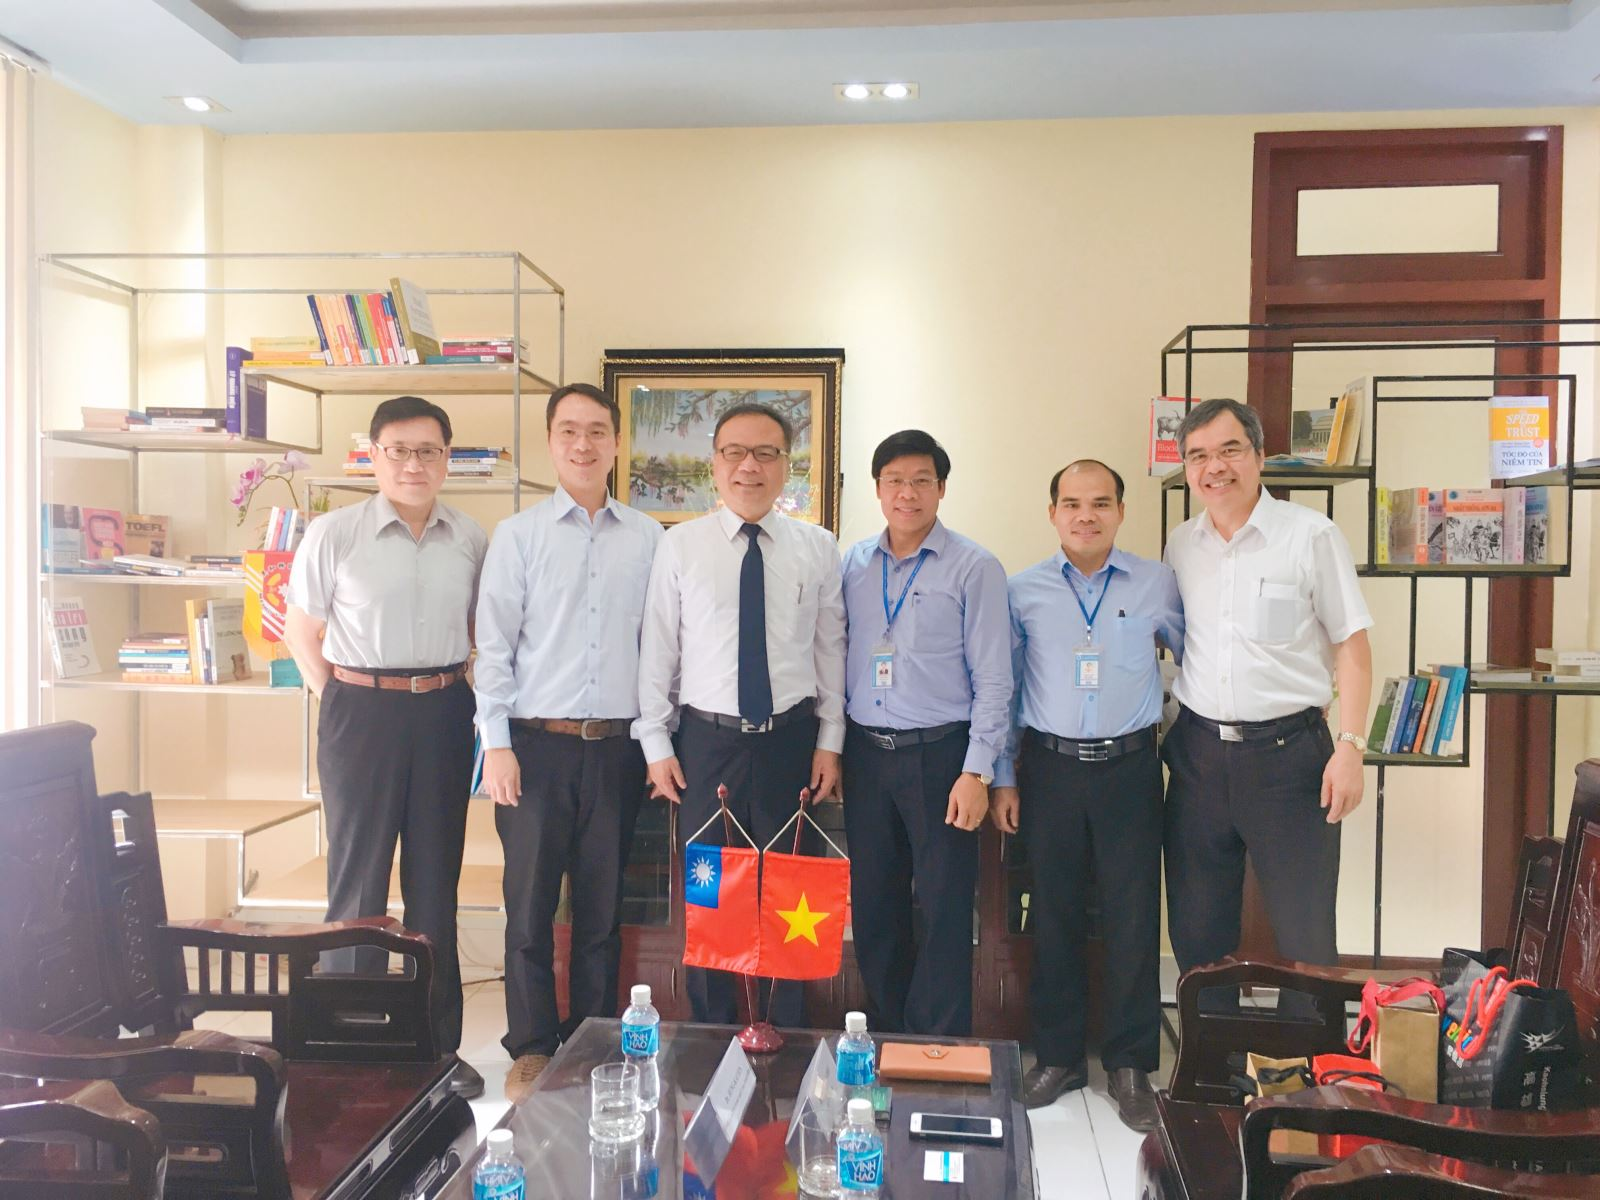 Welcoming president and leaders from Meiho University (Taiwan)